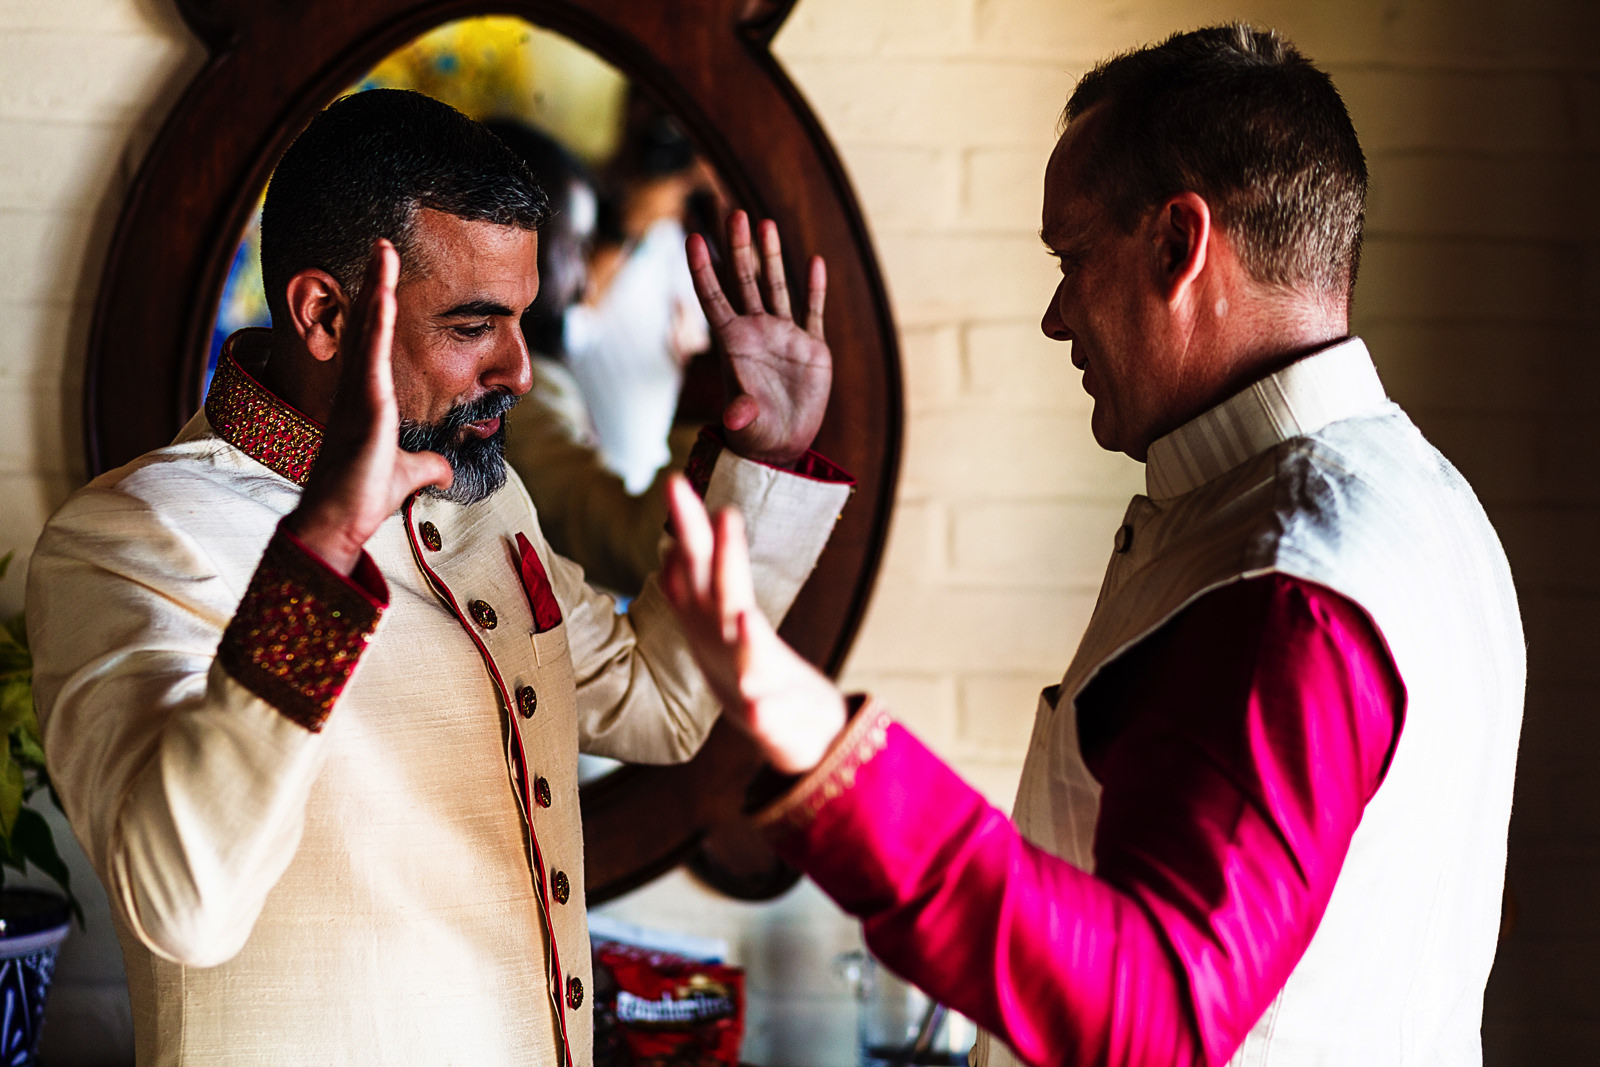 Hands explote as part of the groom and best man preparation ritual